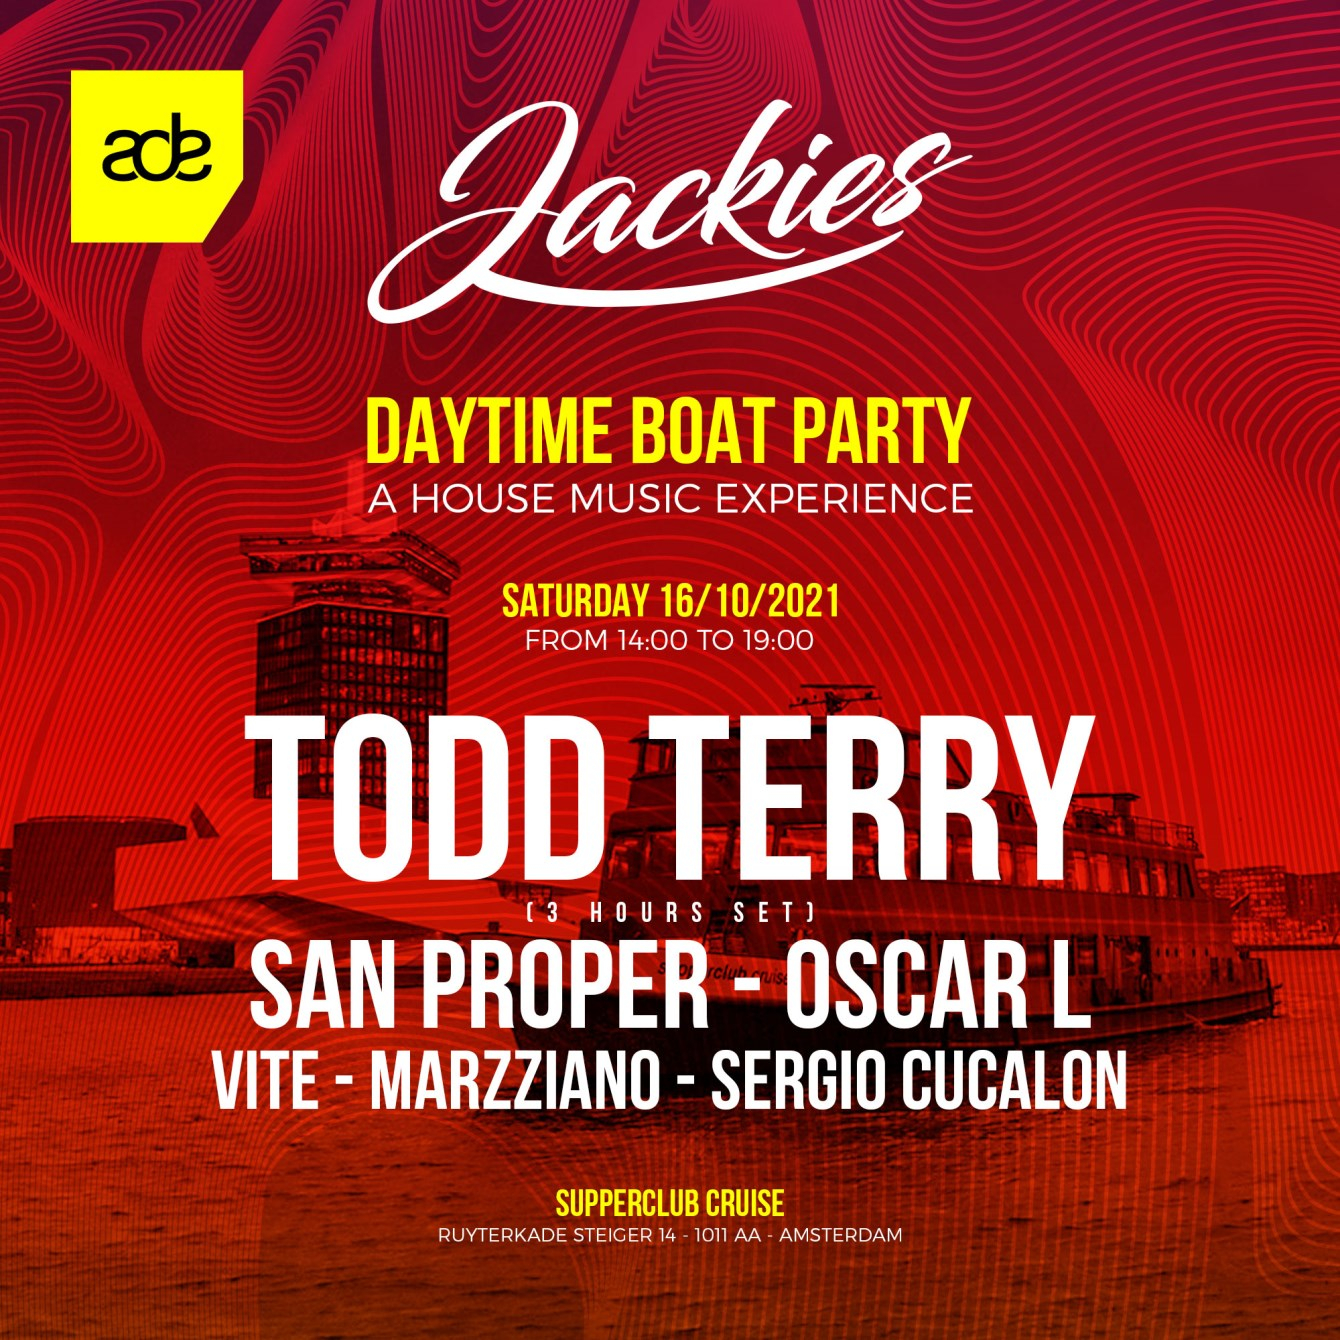 JACKIES ADE pres: Boat Party with Todd Terry & San Proper - Flyer front